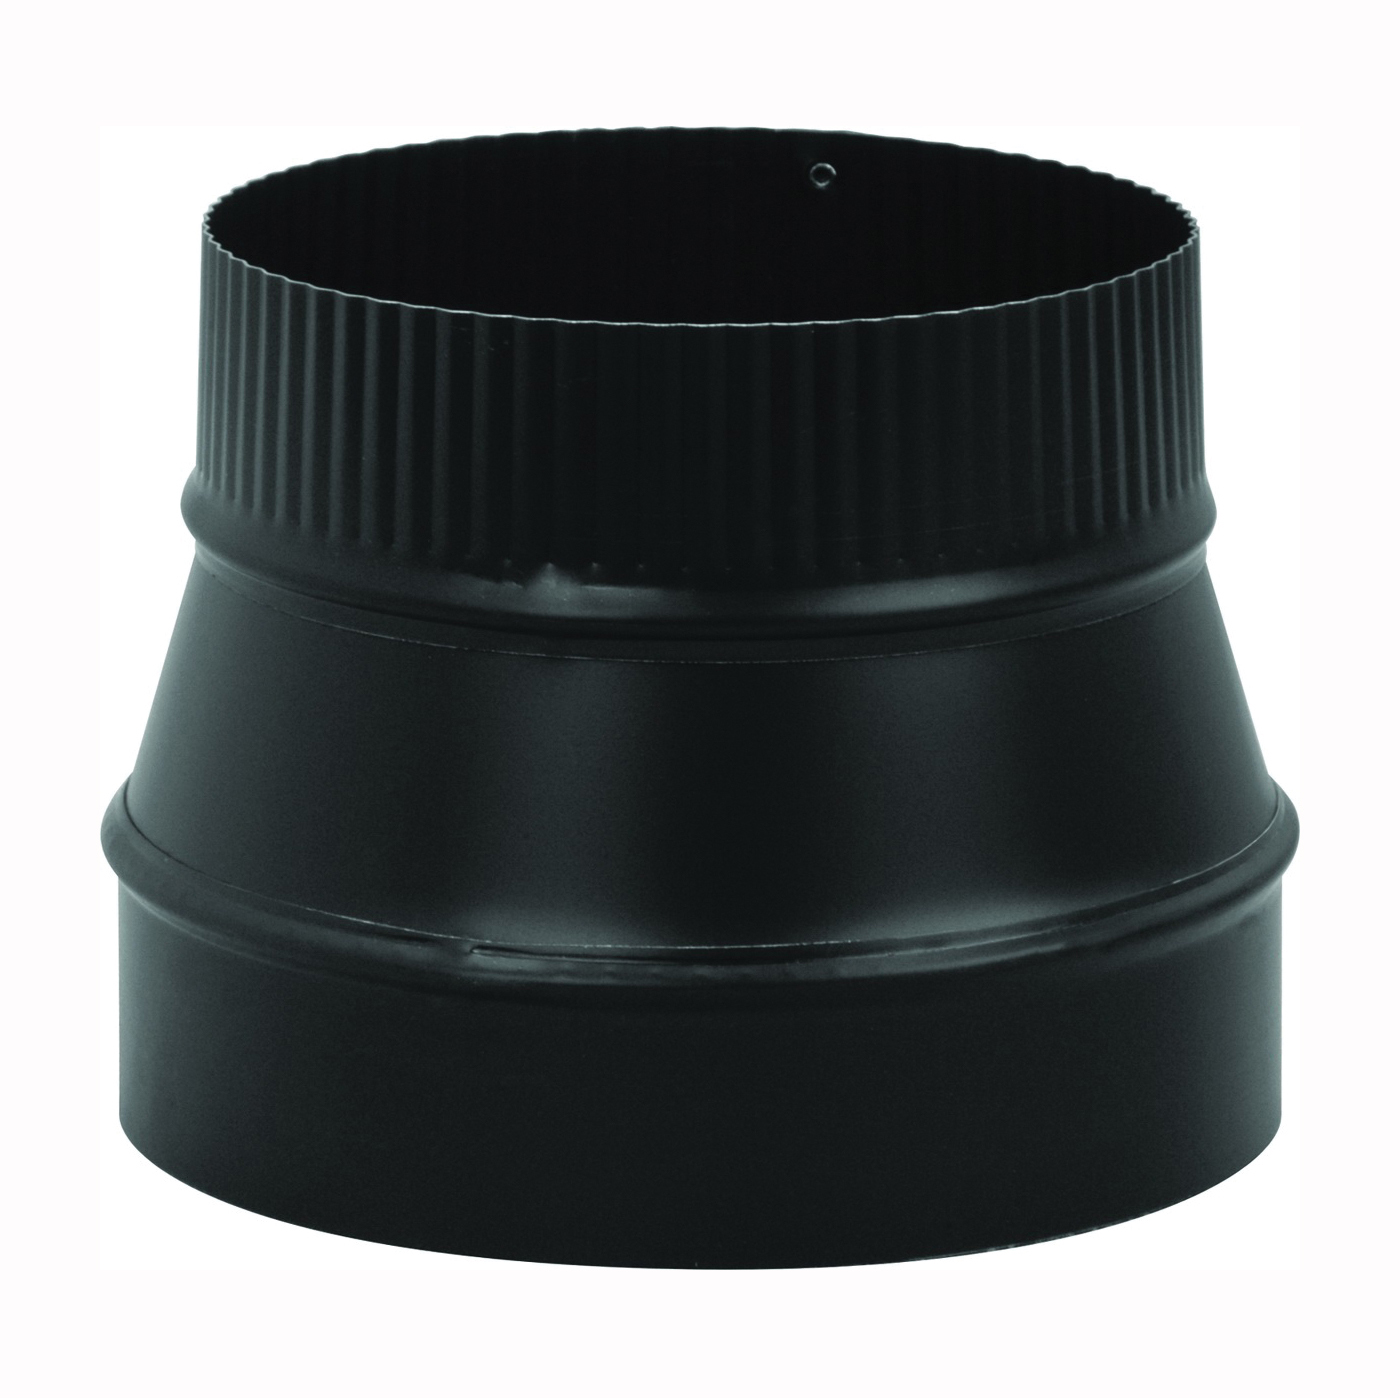 Picture of Imperial BM0077 Stove Pipe Reducer, 7 x 6 in, Crimp, 24 ga Thick Wall, Black, Matte